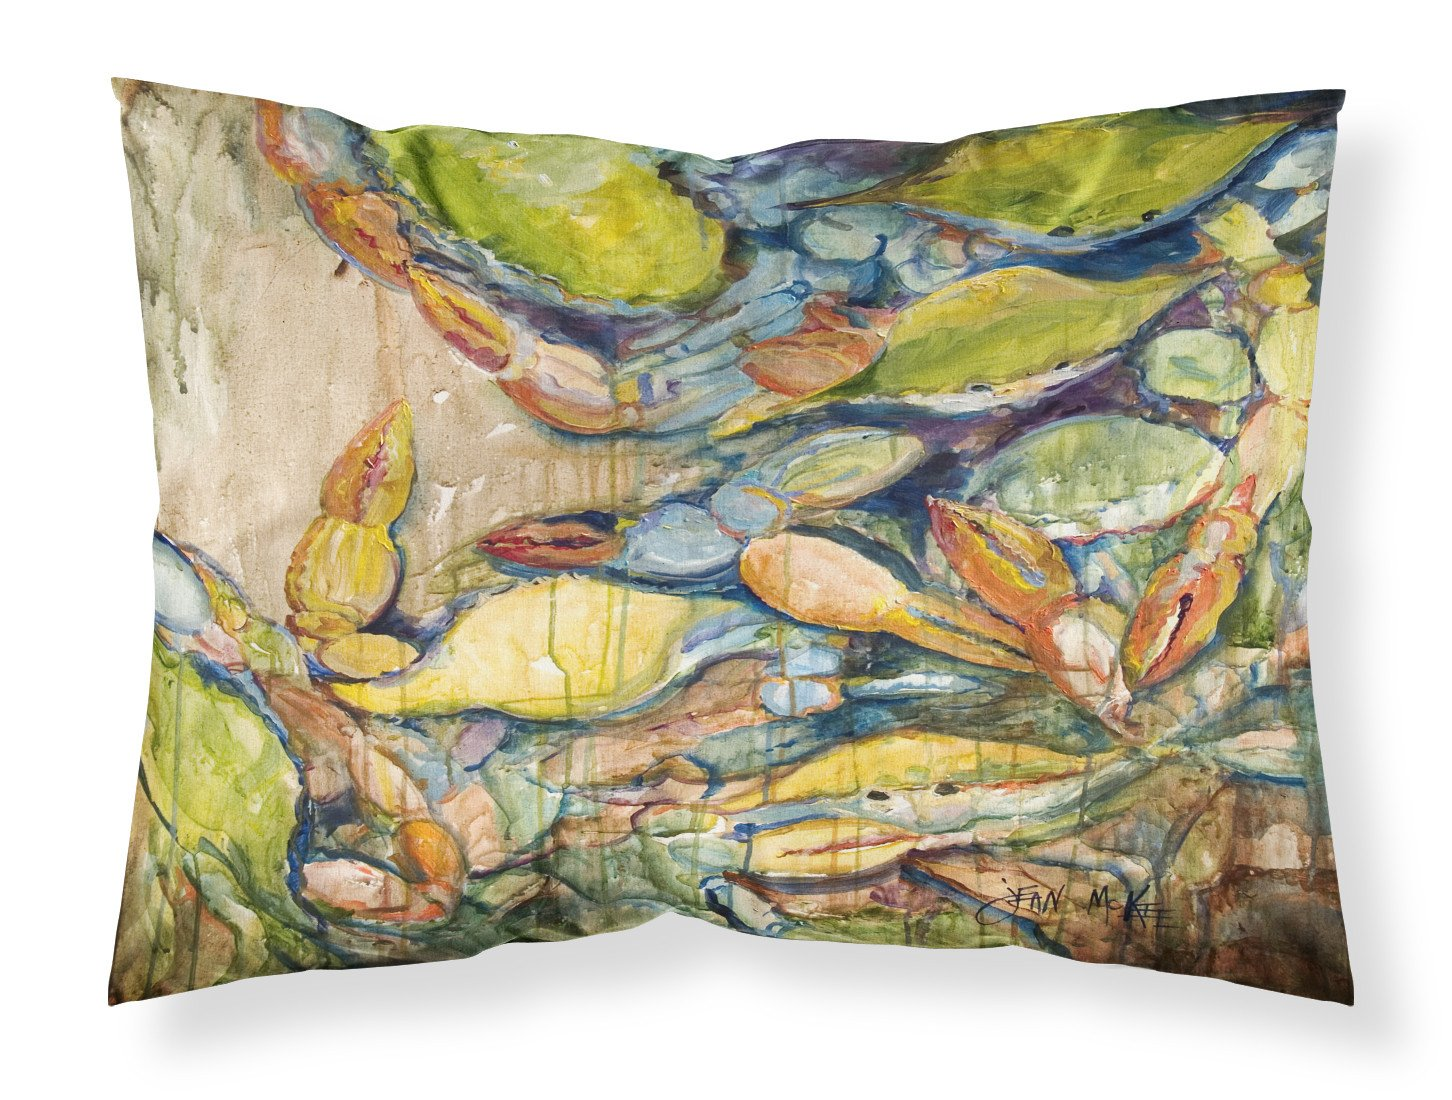 Buy this Jubilee Blue Crab Fabric Standard Pillowcase JMK1102PILLOWCASE